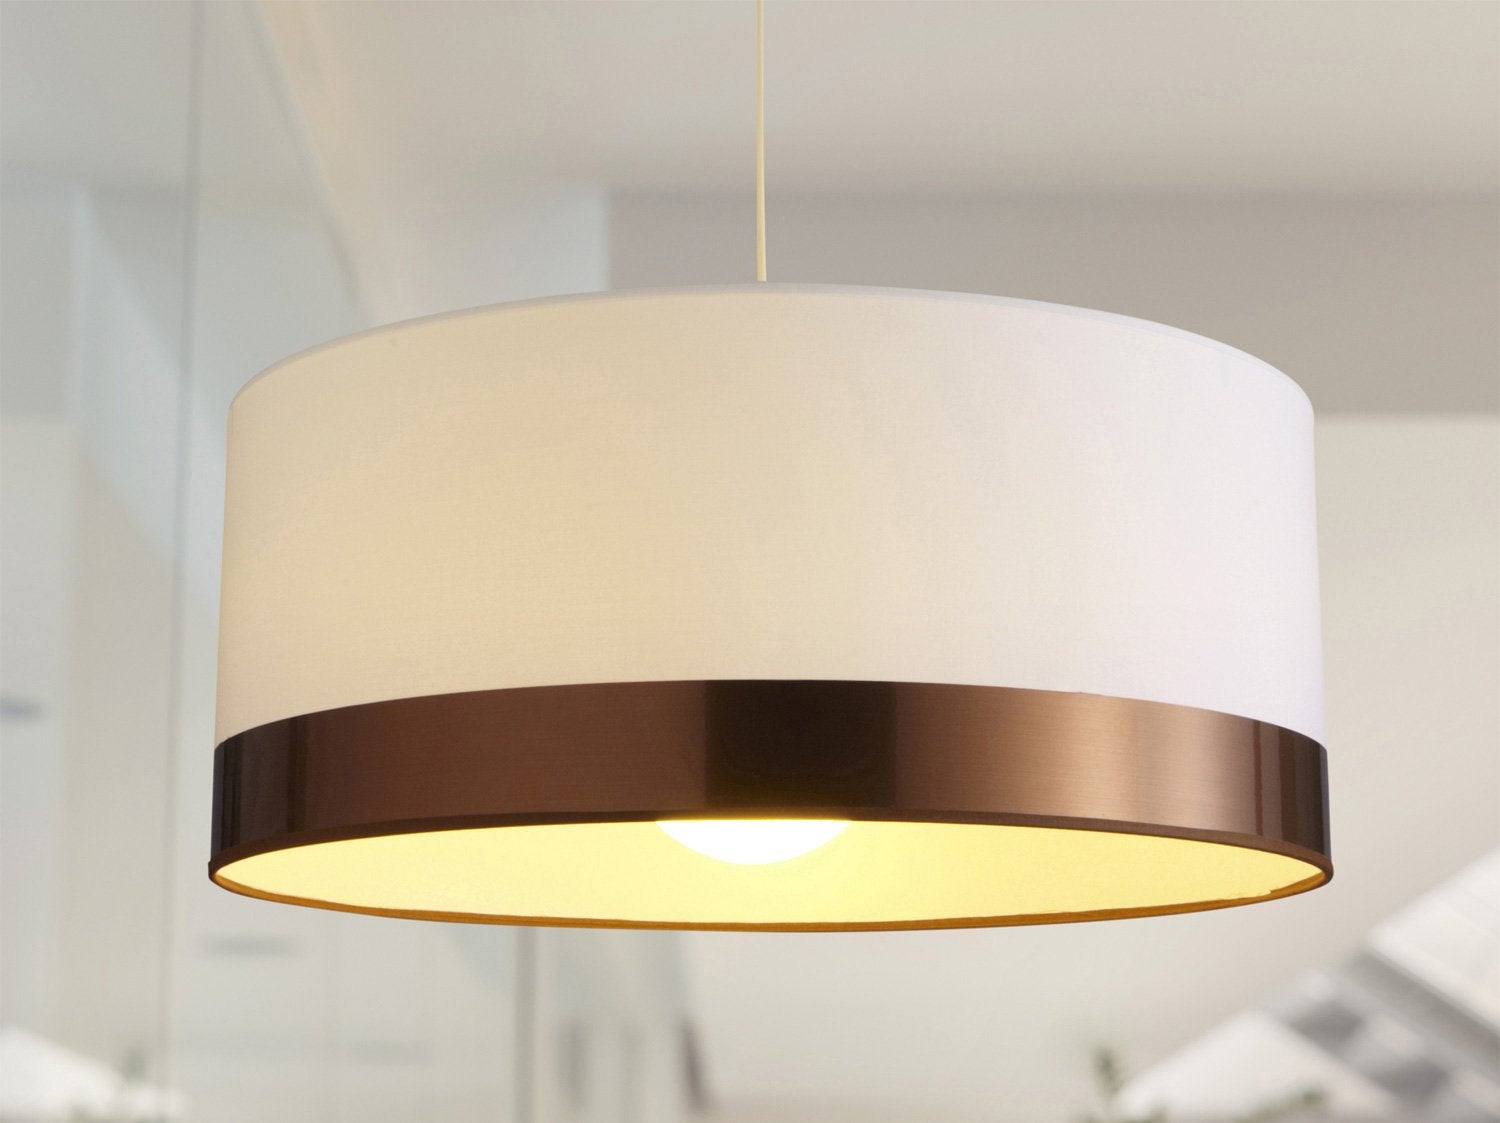 Luminaire int rieur design leroy merlin for Lustres et suspensions design